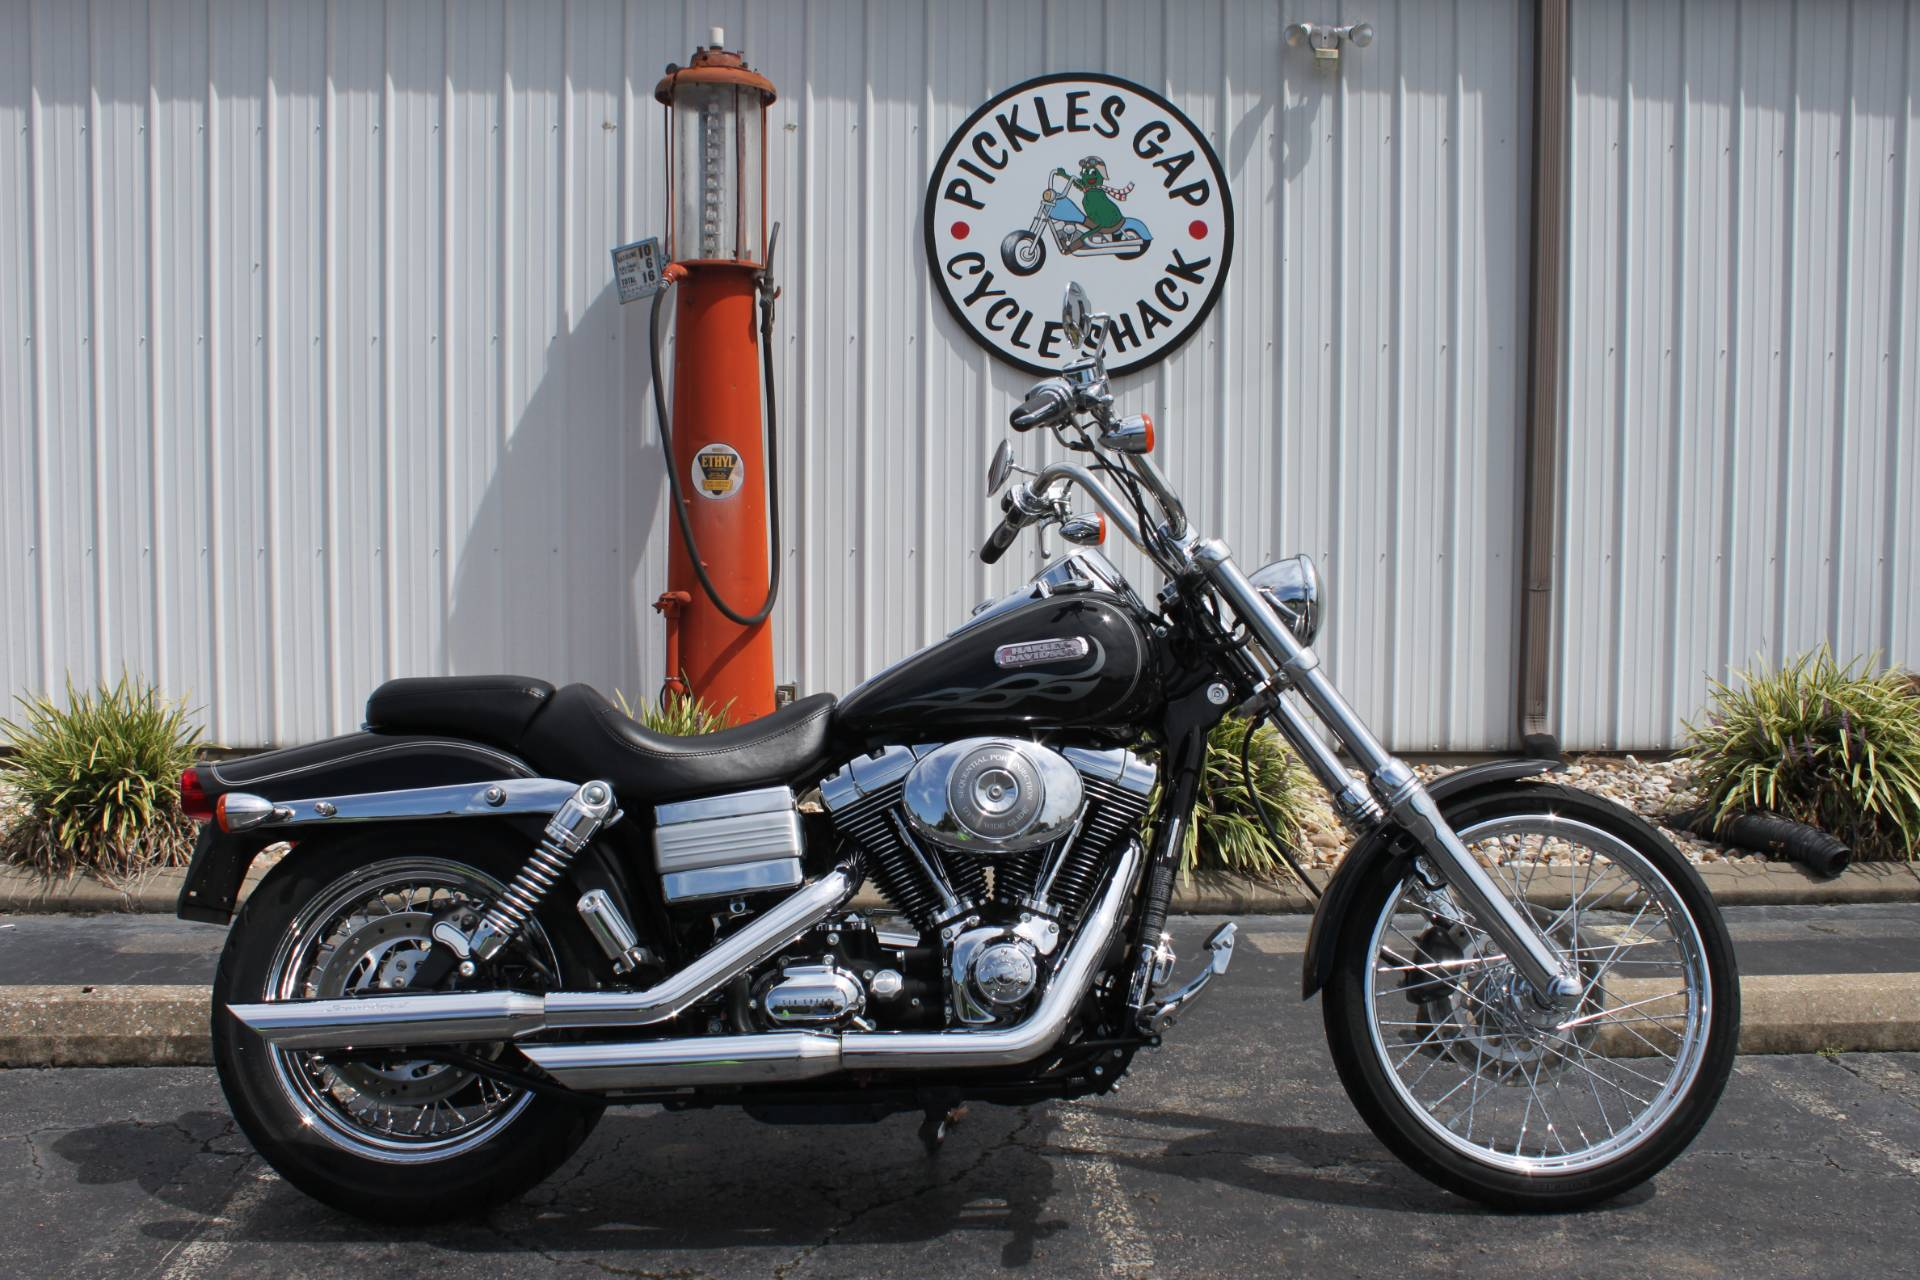 2006 Harley-Davidson FXDWG DYNA WIDE GLIDE in Greenbrier, Arkansas - Photo 1